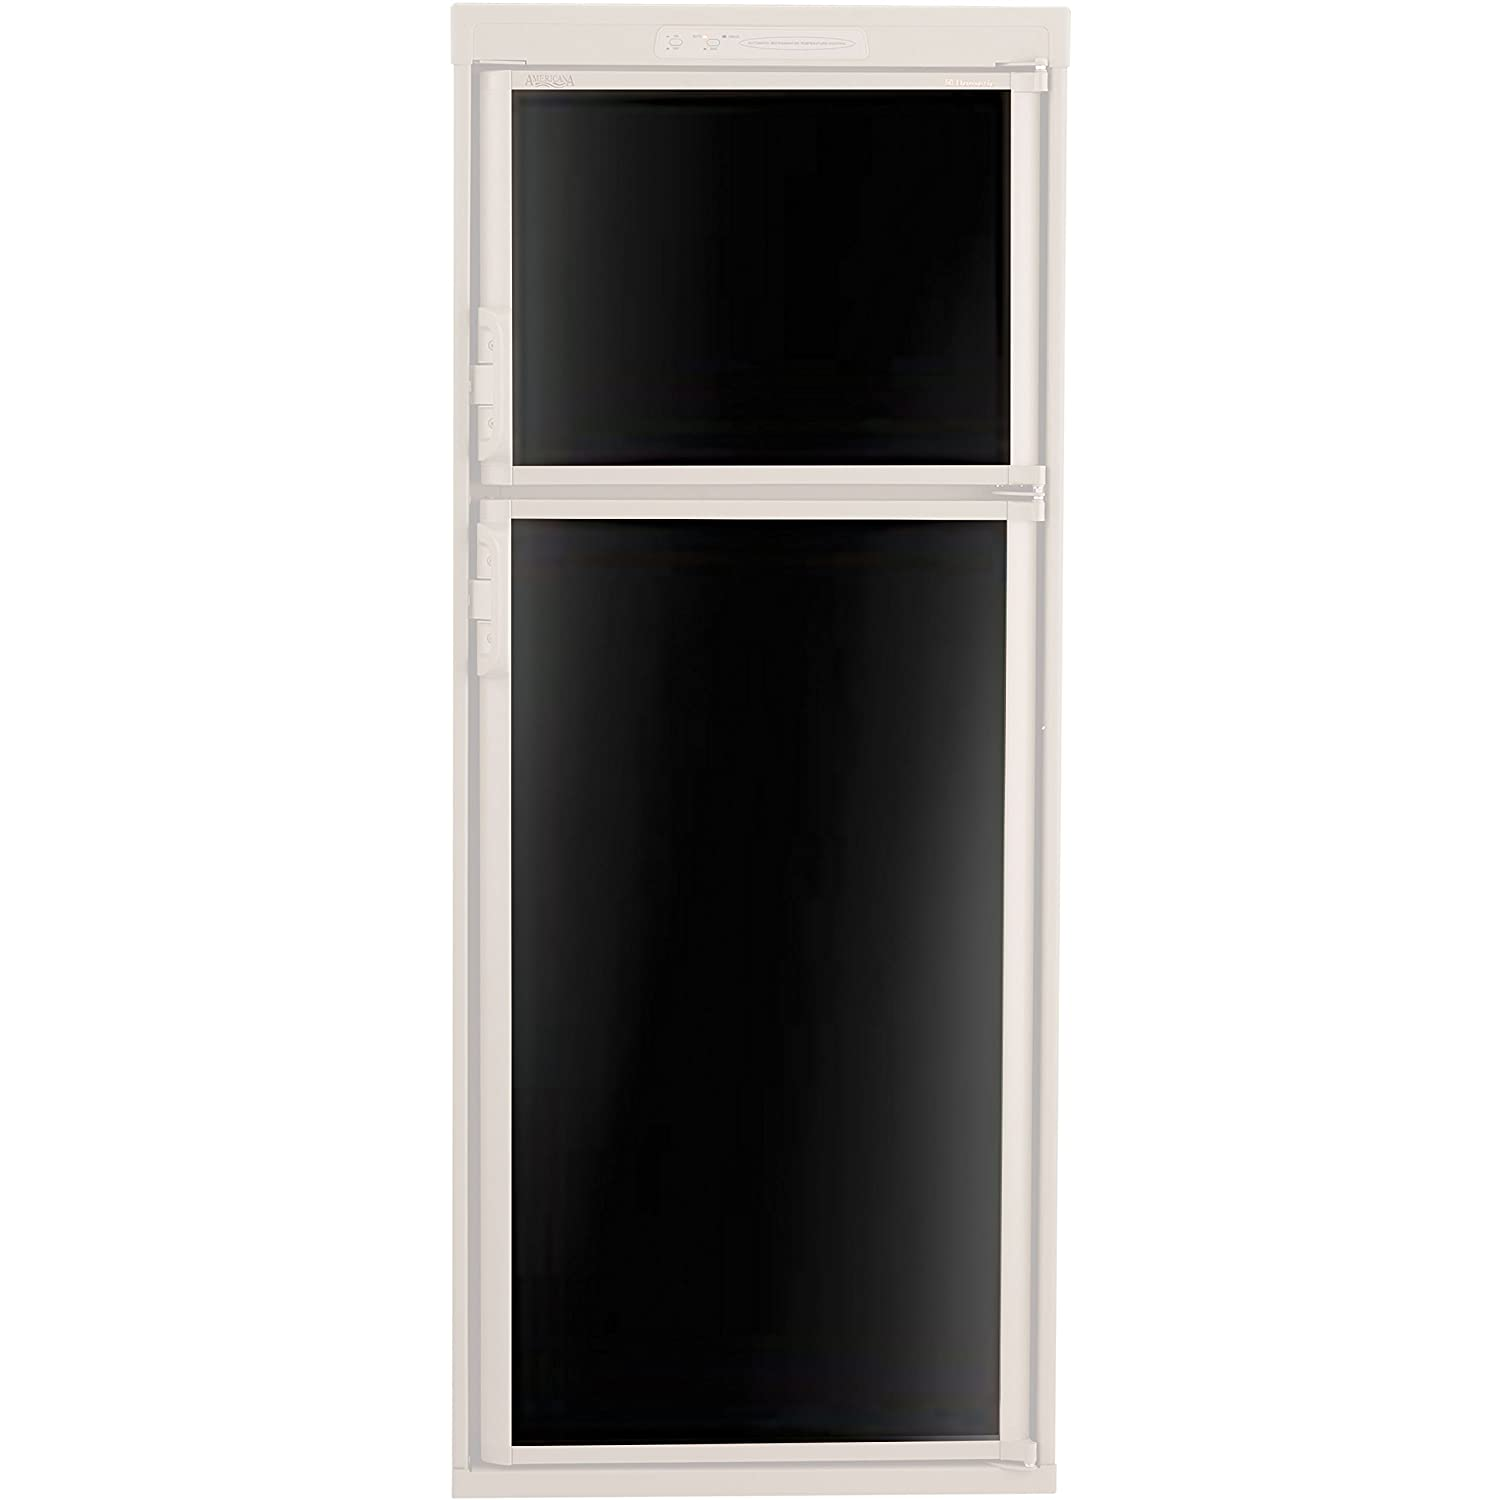 Dometic 3106863.073C Refrigerator Door Panel, Both Panels for RM2652/3662/3663 - Black Acrylic